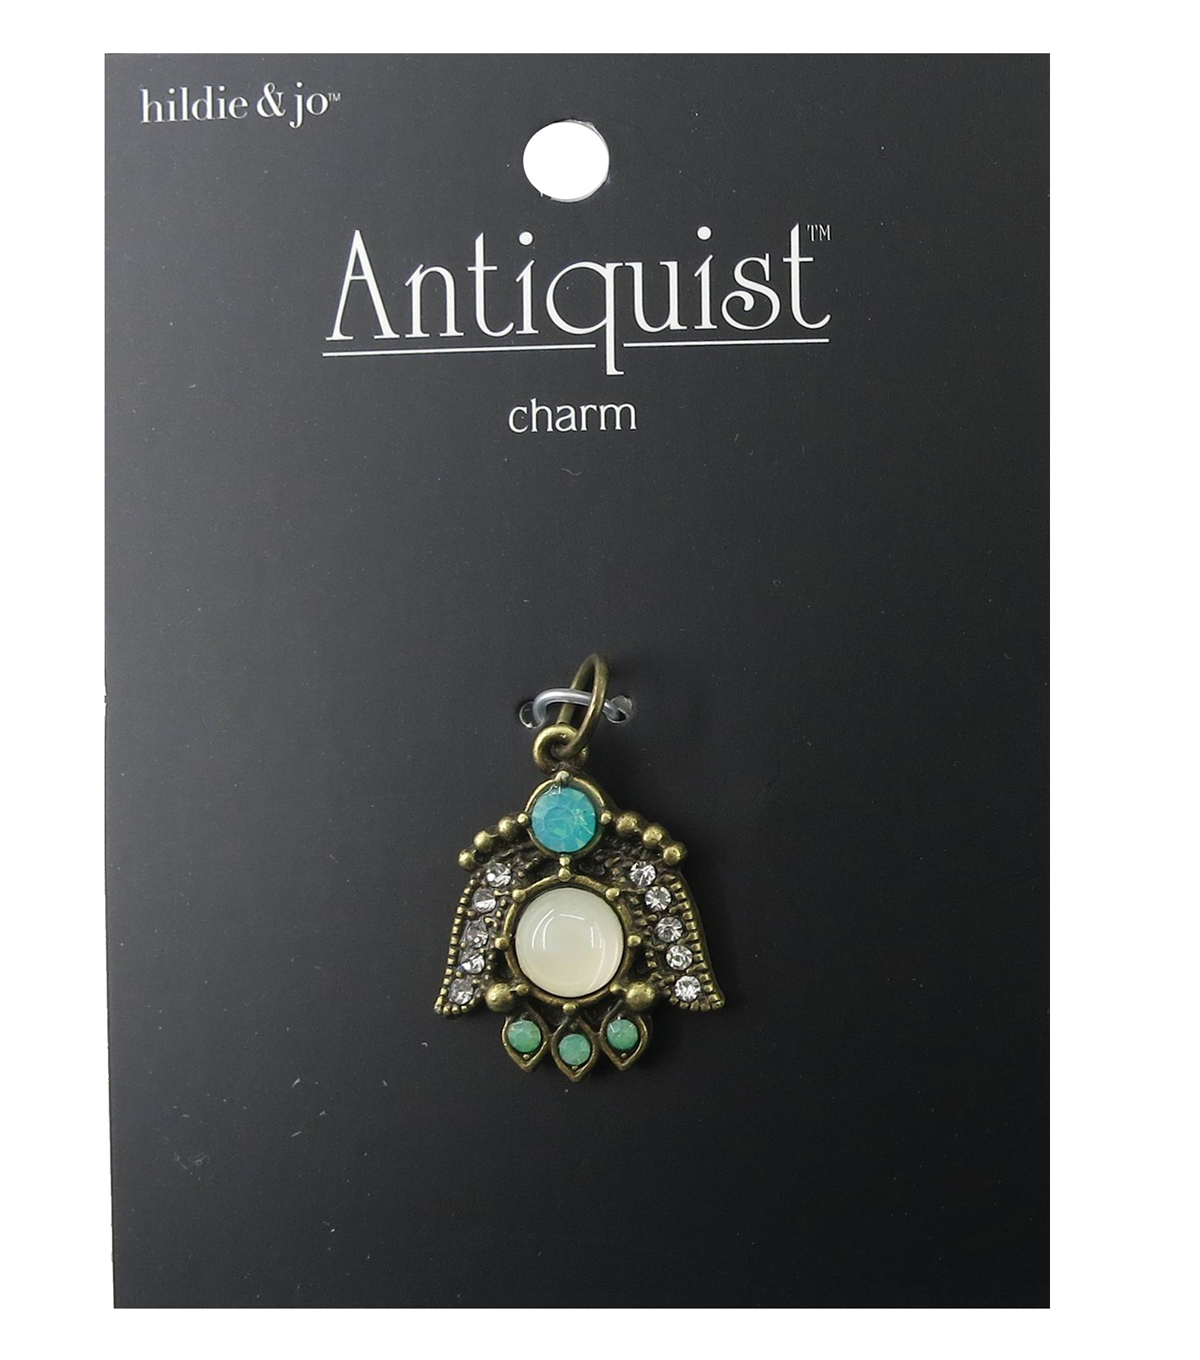 hildie & jo™ Bug Antique Gold Charm-Crystals & Green Stones